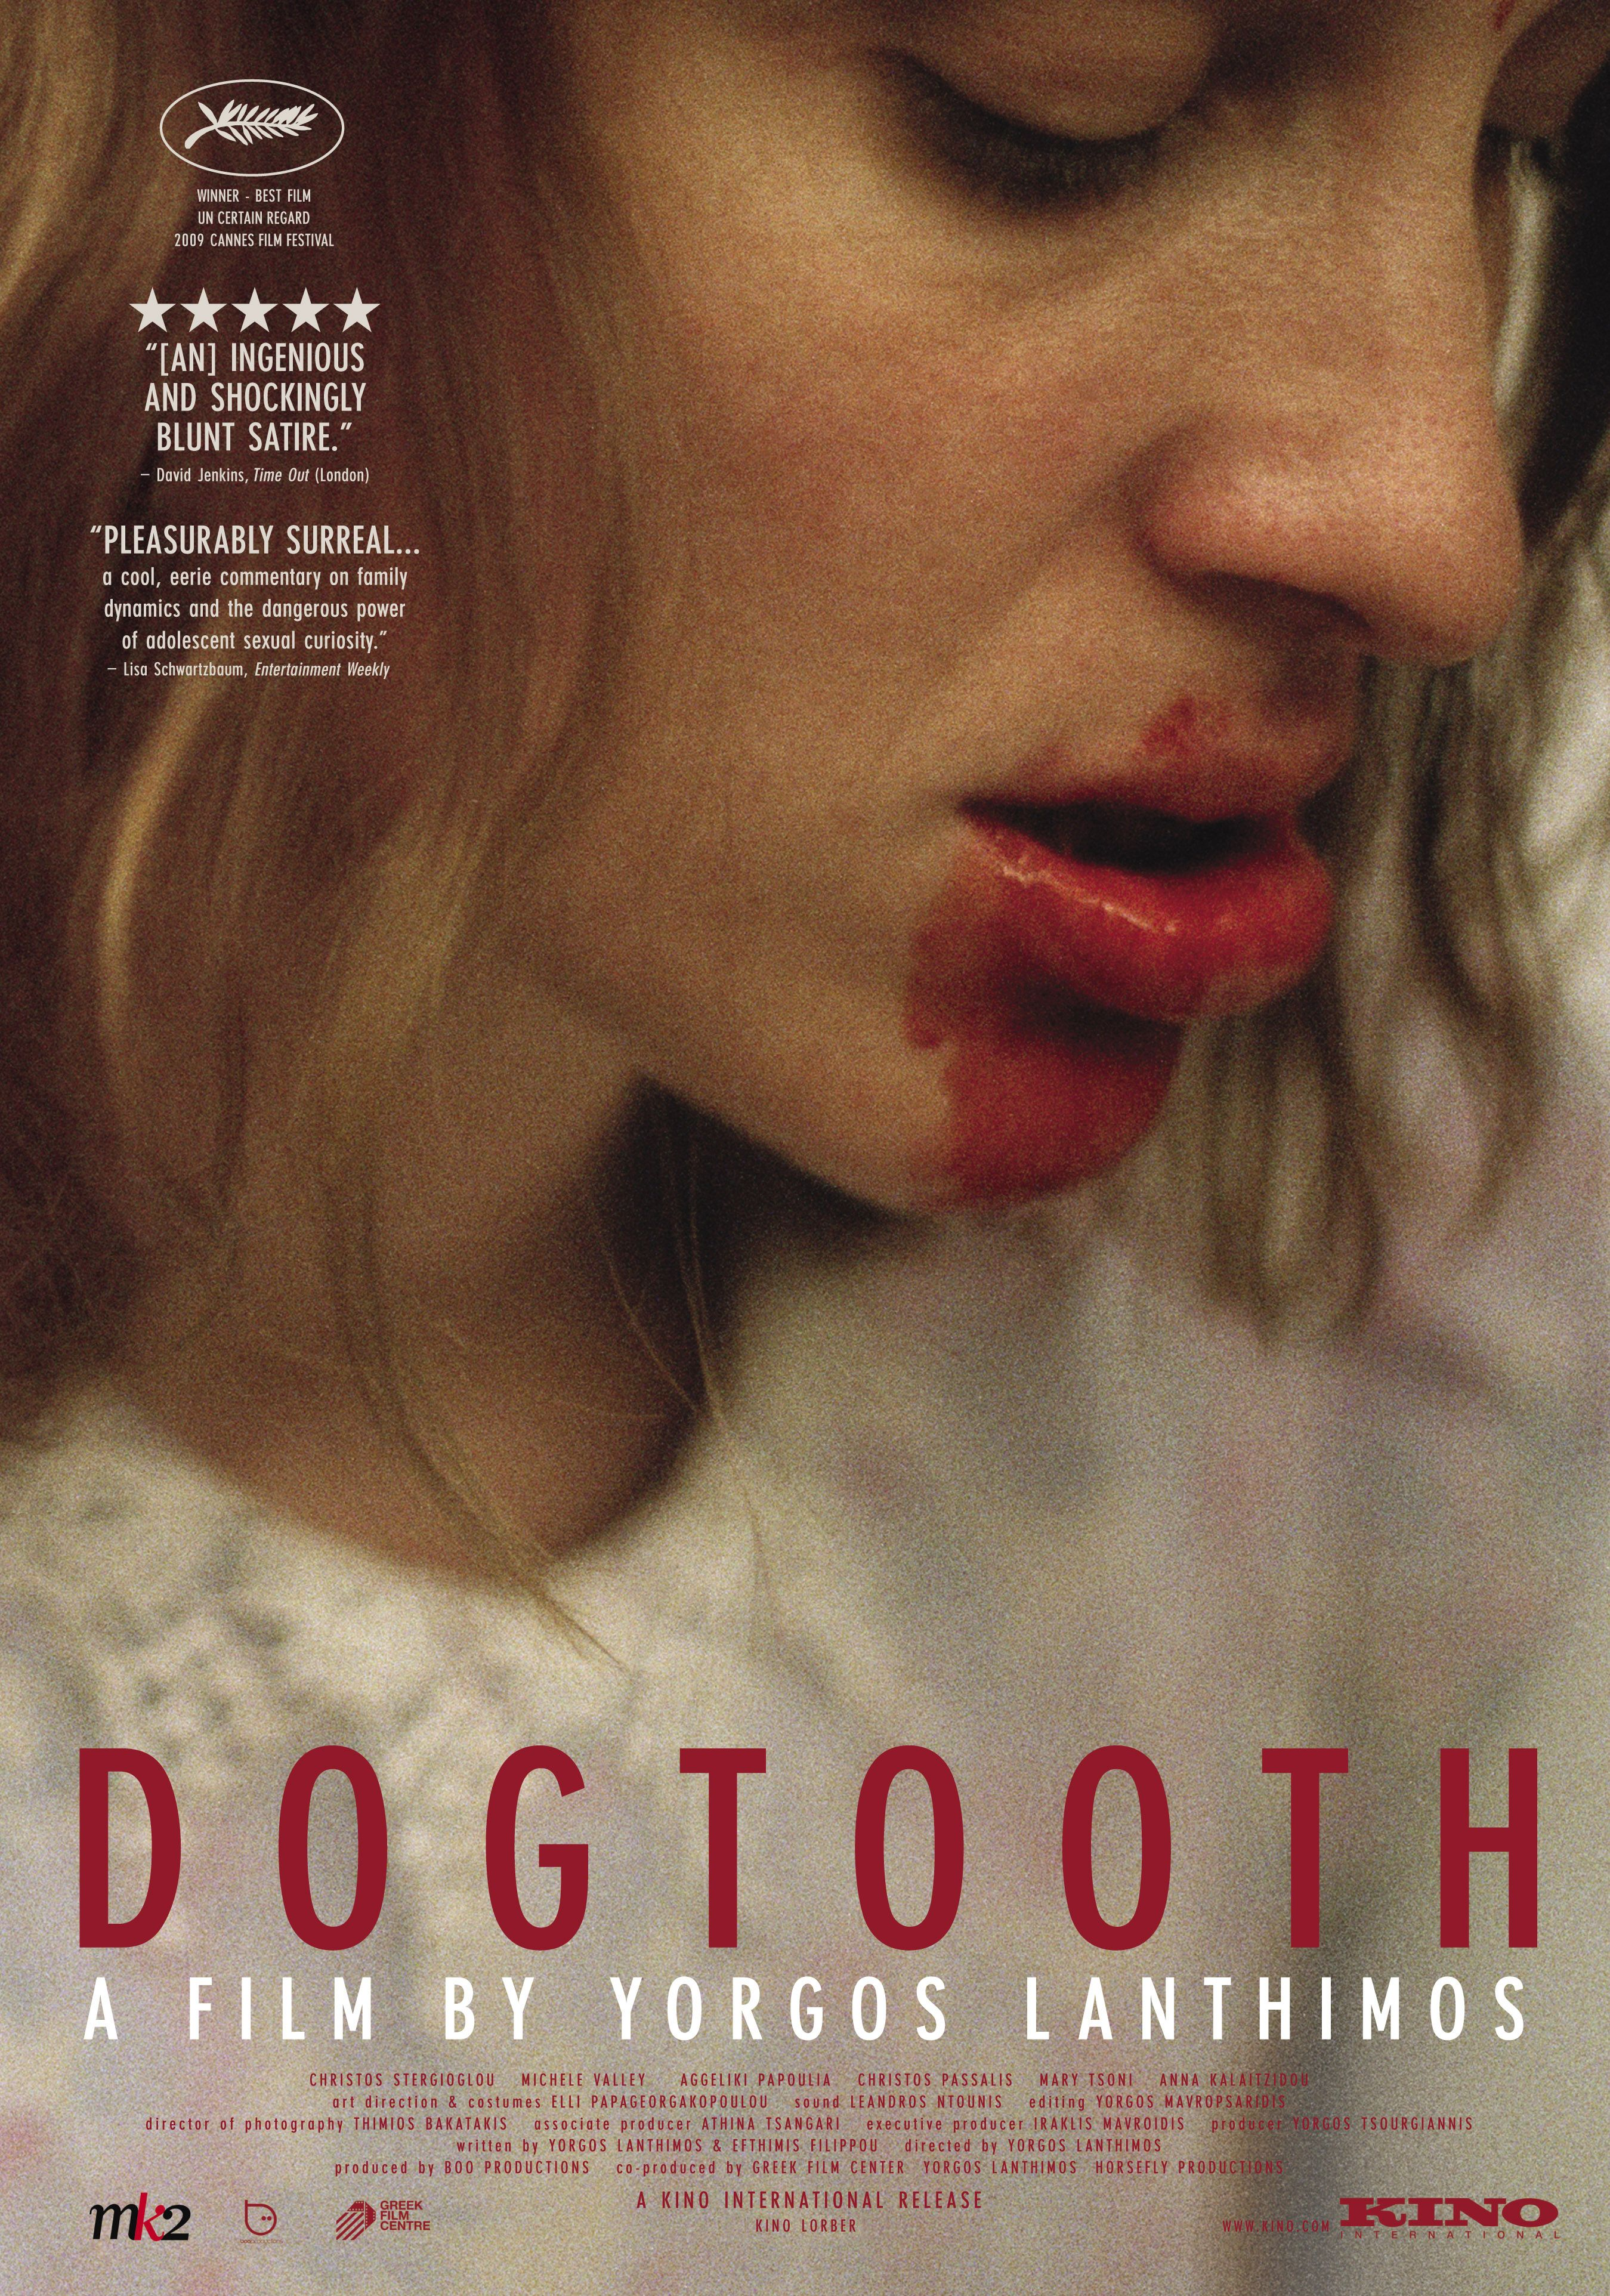 La Chambre Bleue Pelicula Dog Tooth Weird But Good Cinema Pinterest Movies Movie